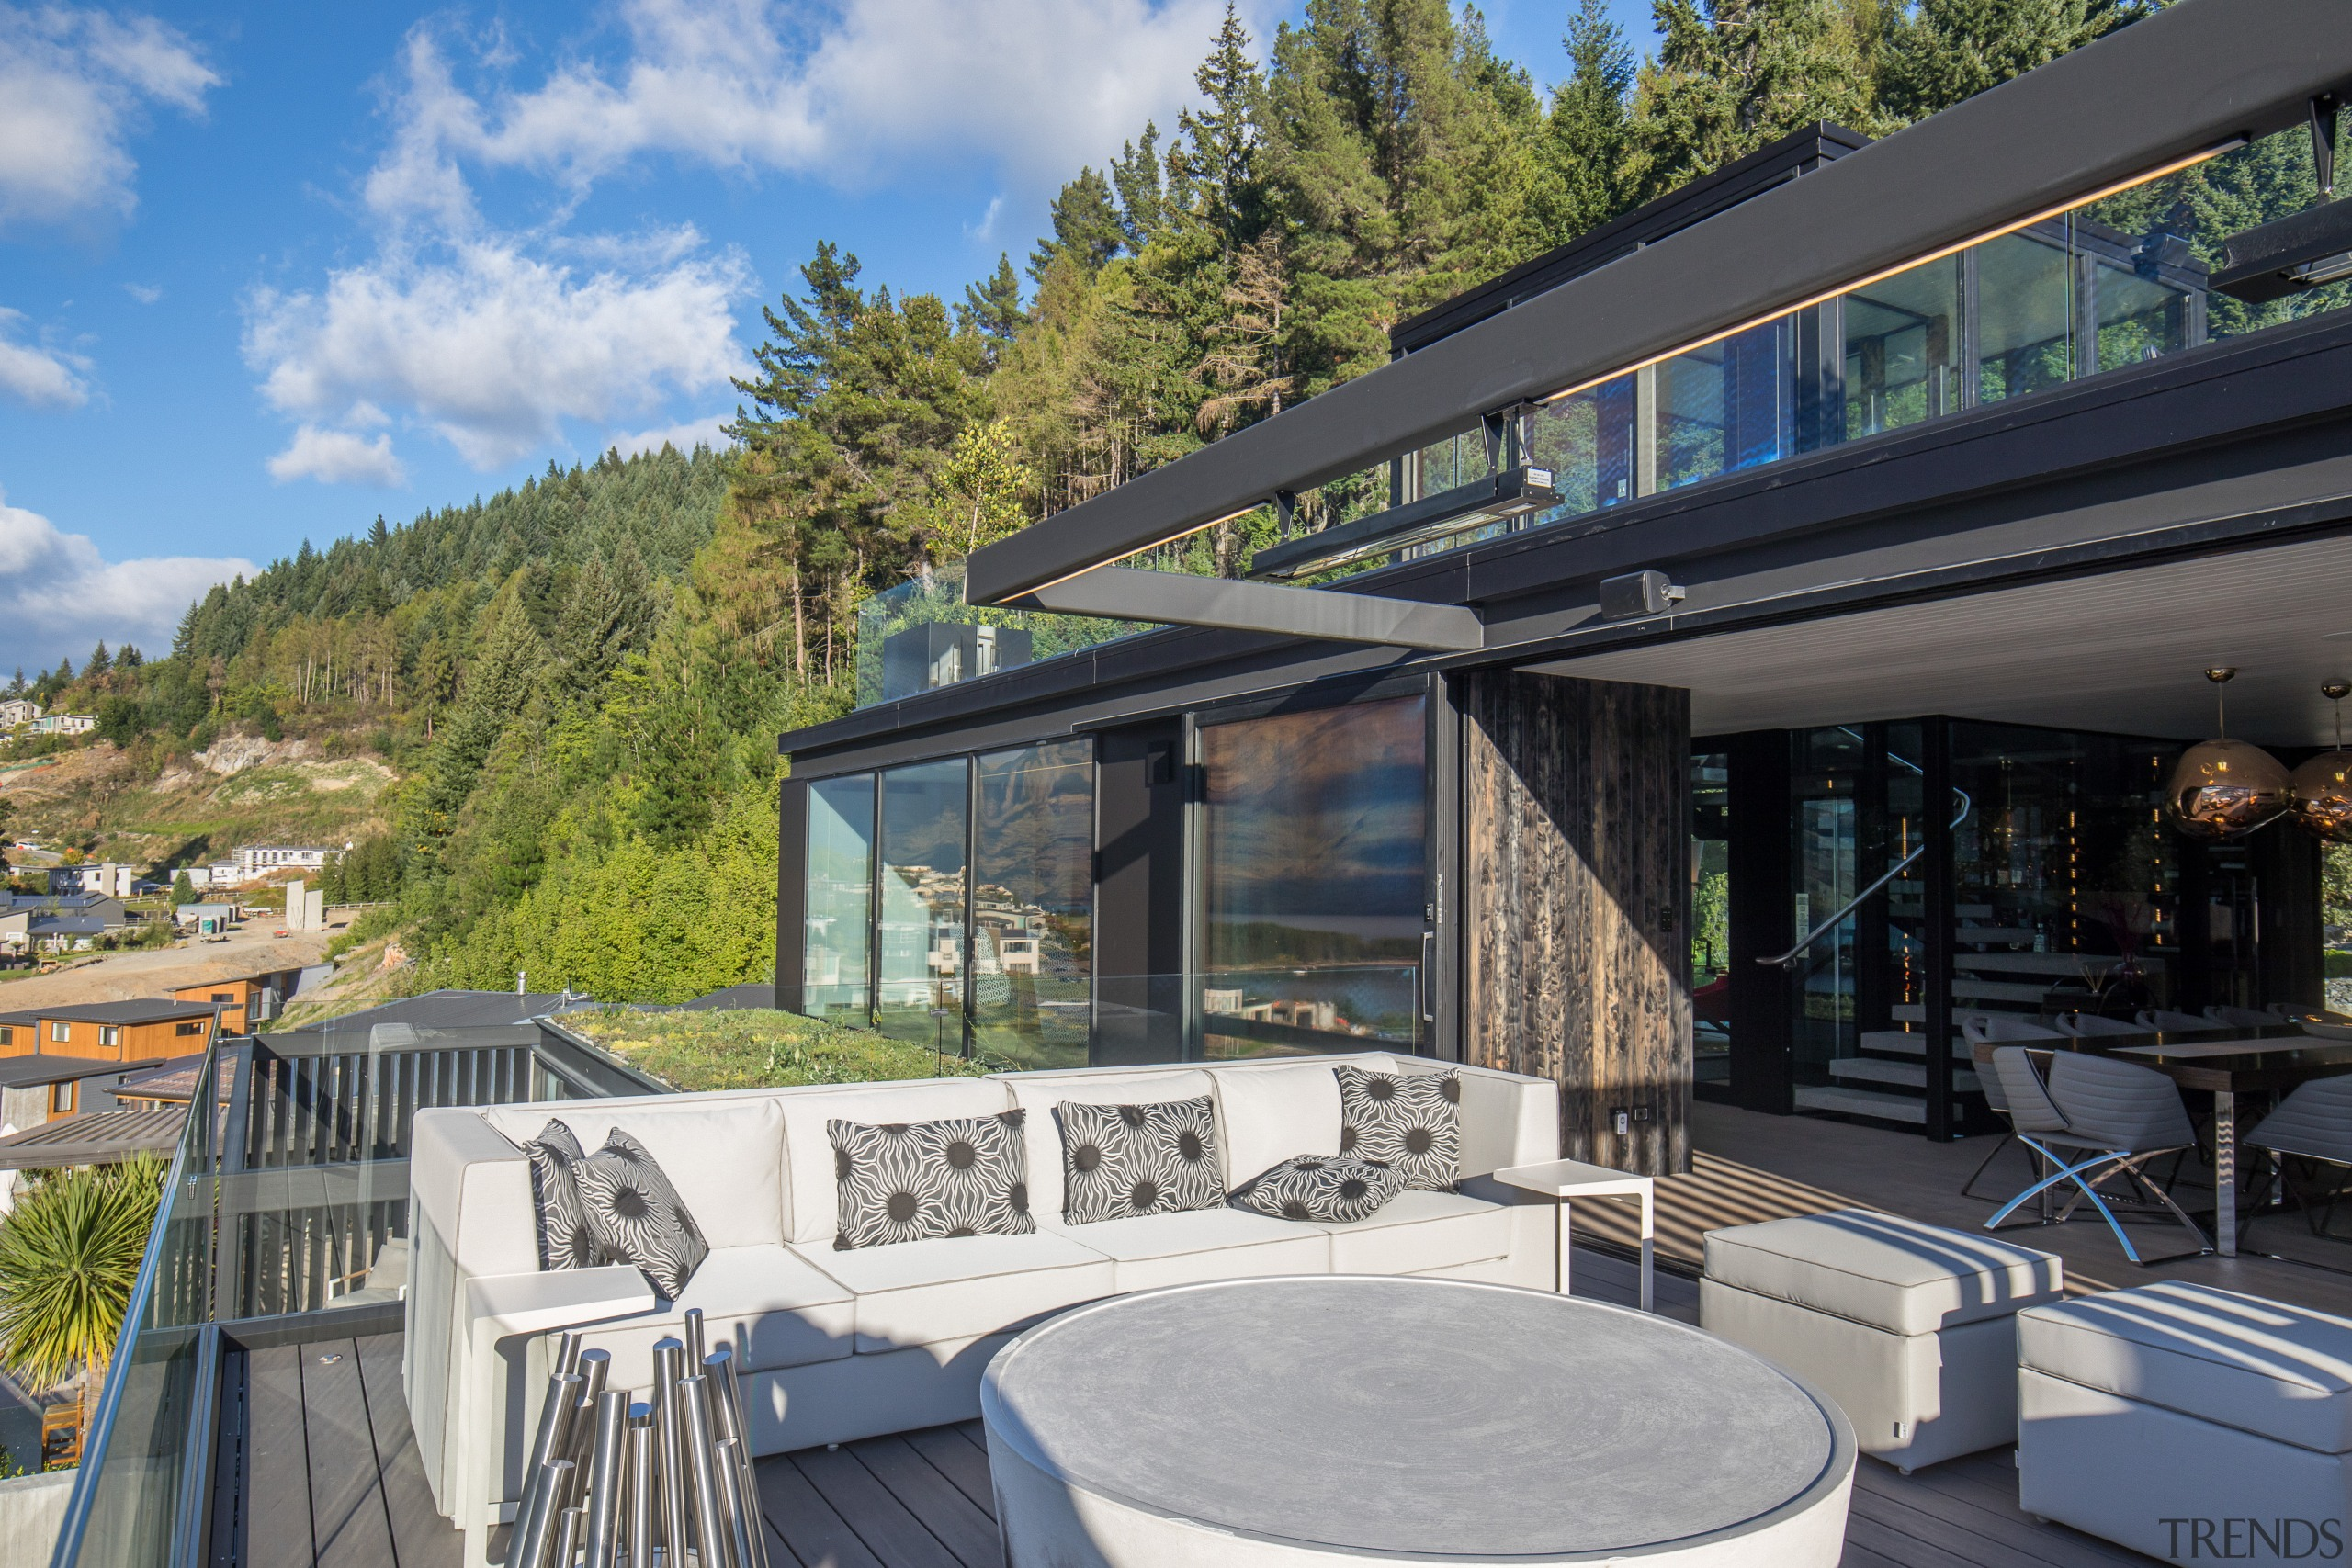 On this alpine residence by Gary Todd Architecture, architecture, home, house, outdoors, property, roof, Gary Todd Architrecture, deck